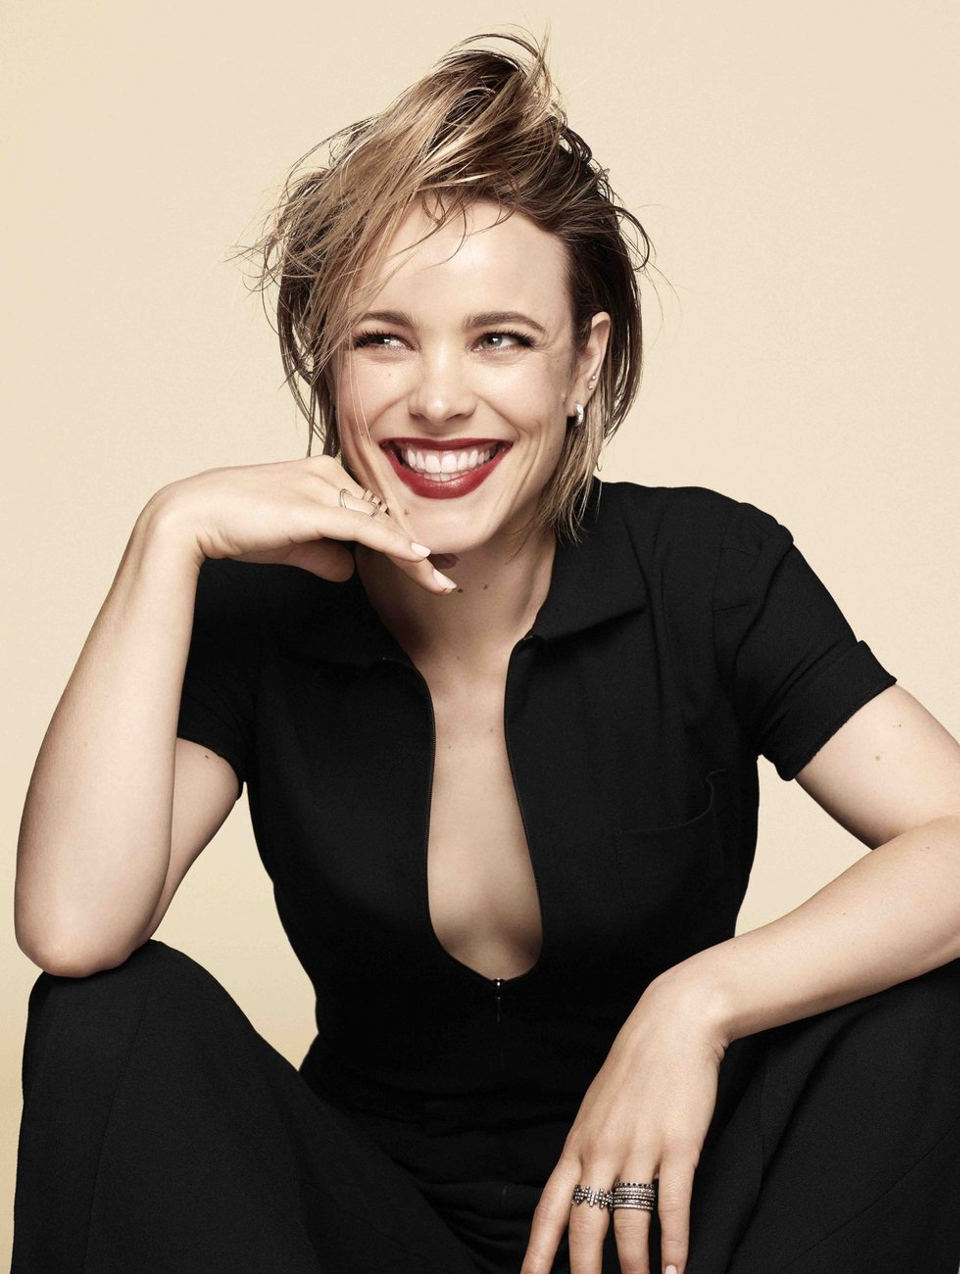 Rachel McAdams On Travelling Solo: Slept With a Knife When Ttravelling Solo in Costa Rica